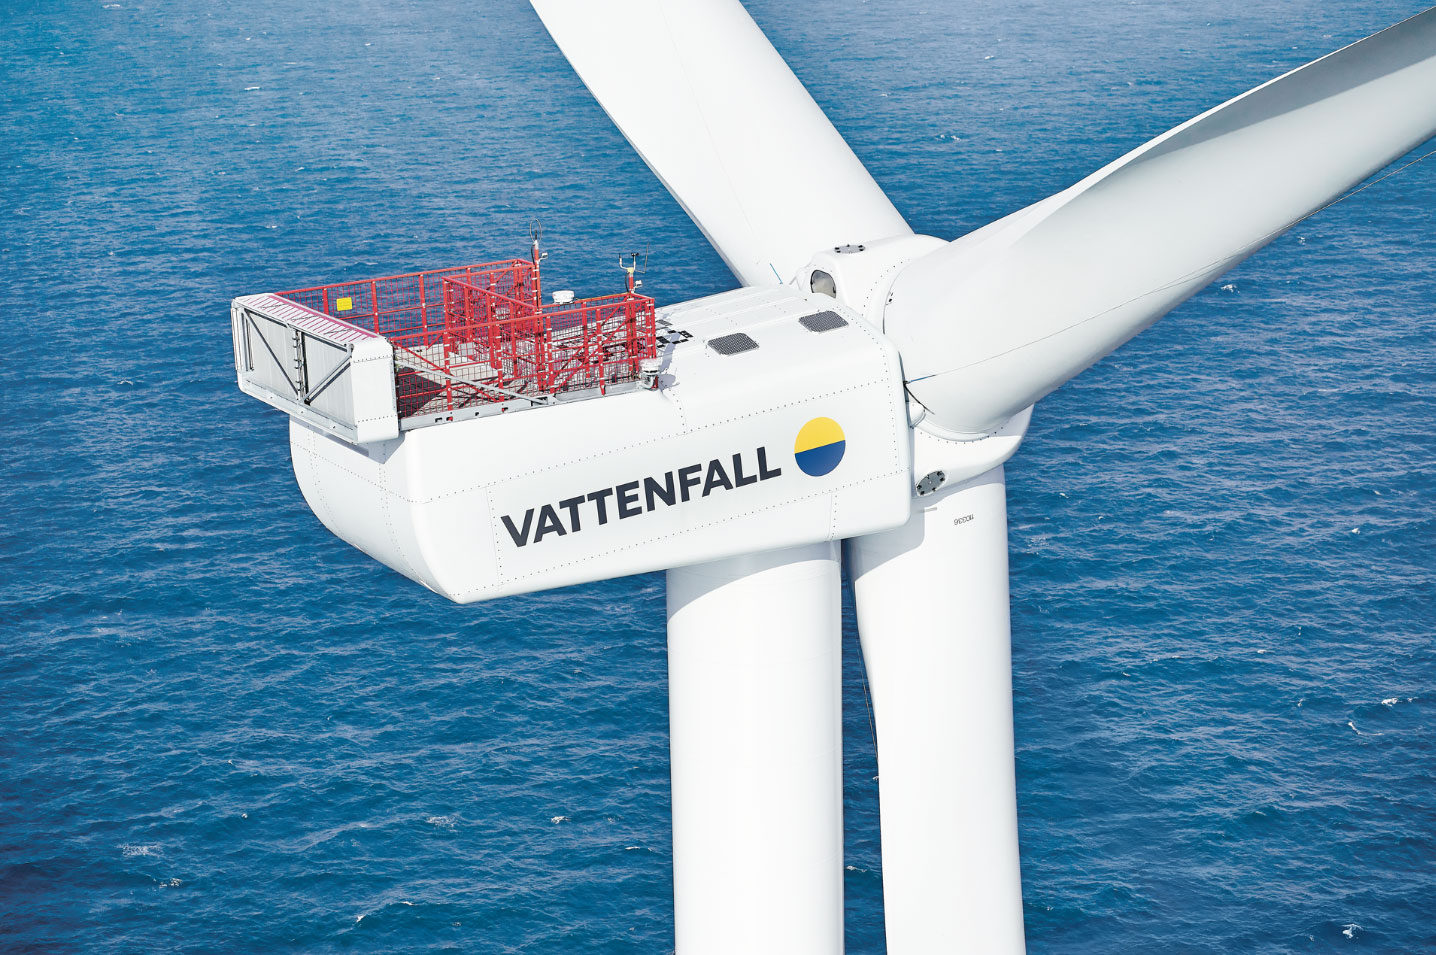 Company Image (Vattenfall: RAS7531 Offshore Wind Turbine)